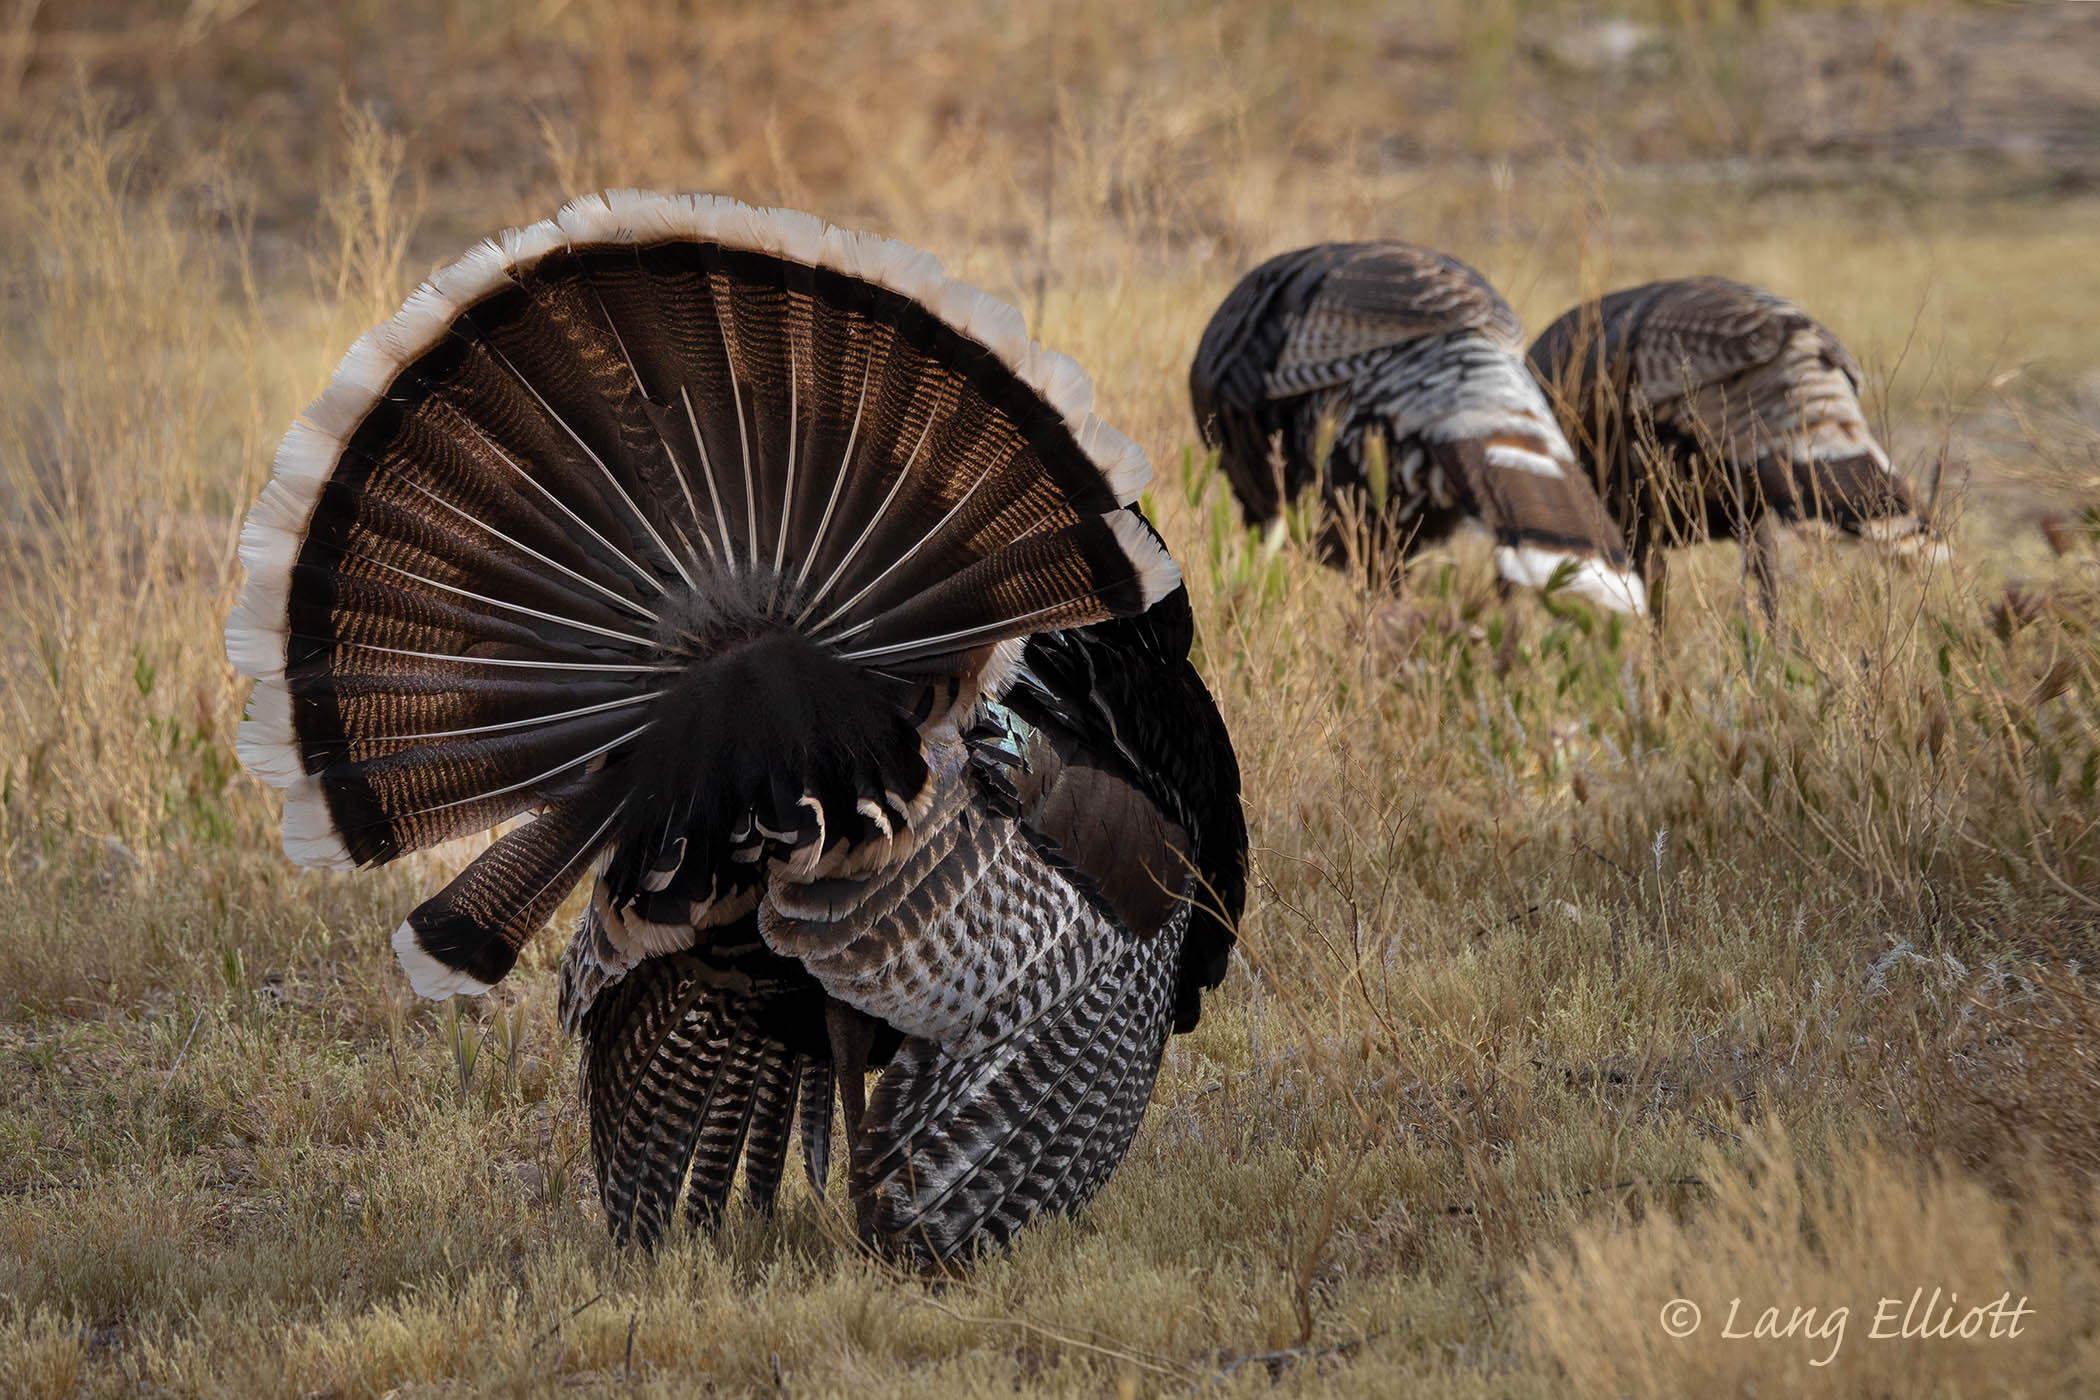 Gould's Wild Turkey - male in full display with two females in the background. © Lang Elliott